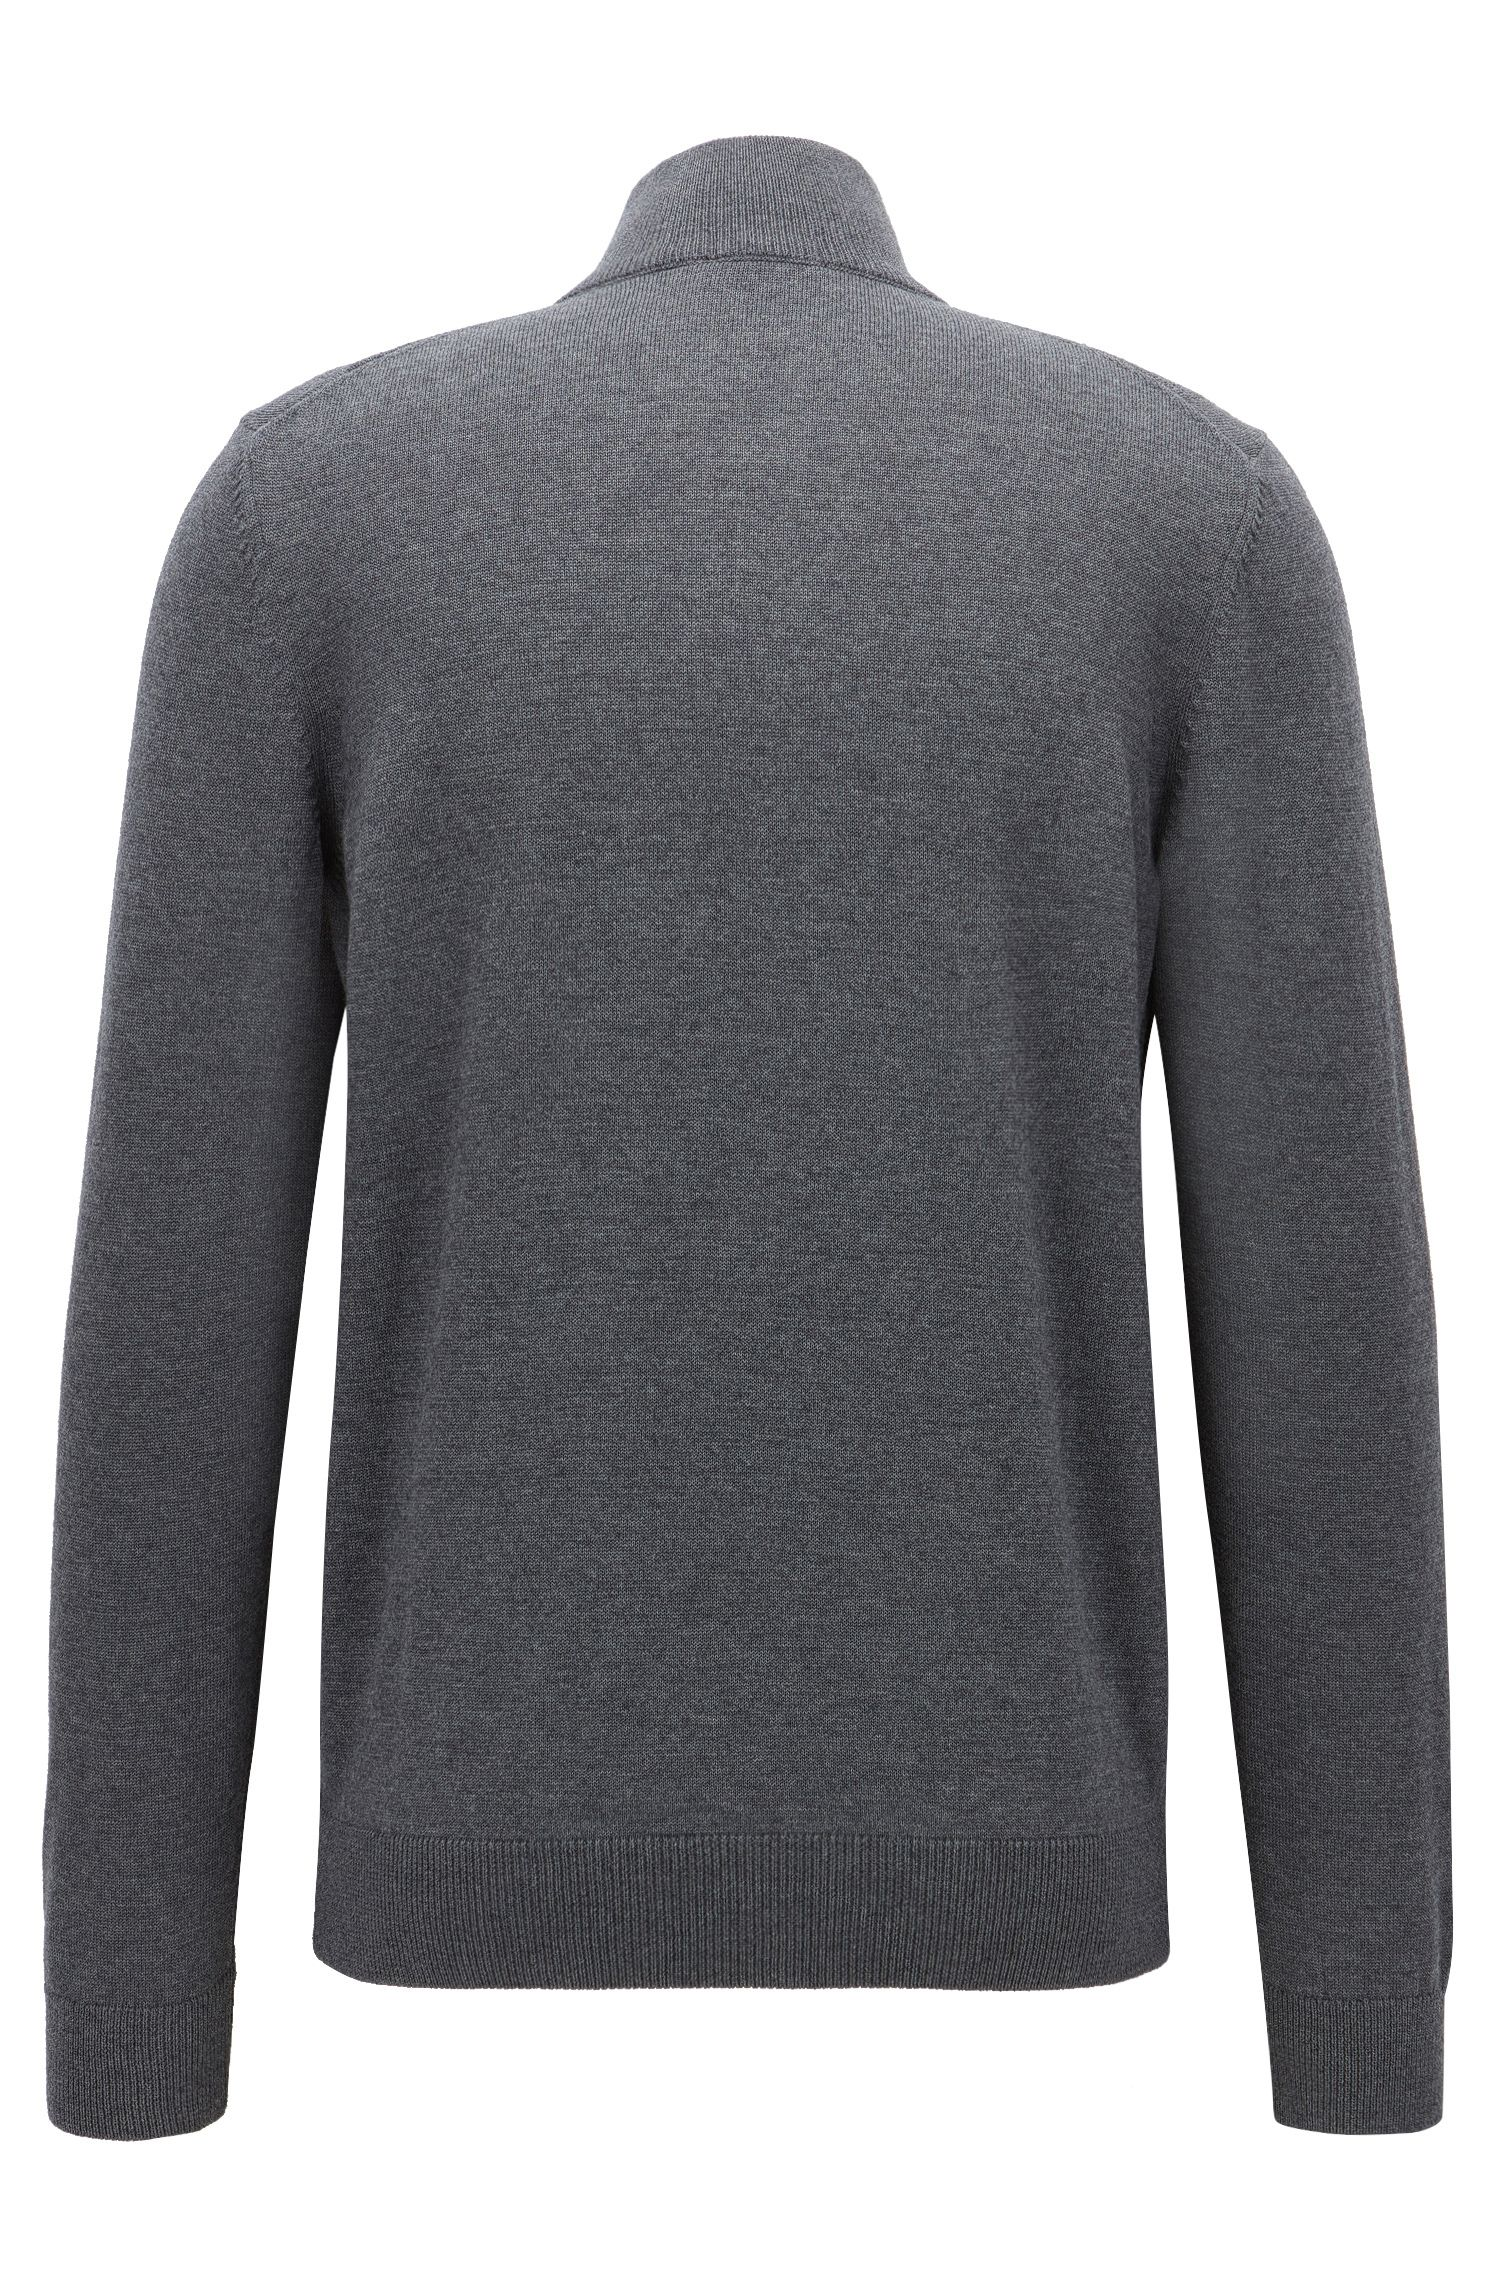 Waffle-Knit Virgin Wool Sweater | Nacello, Grey